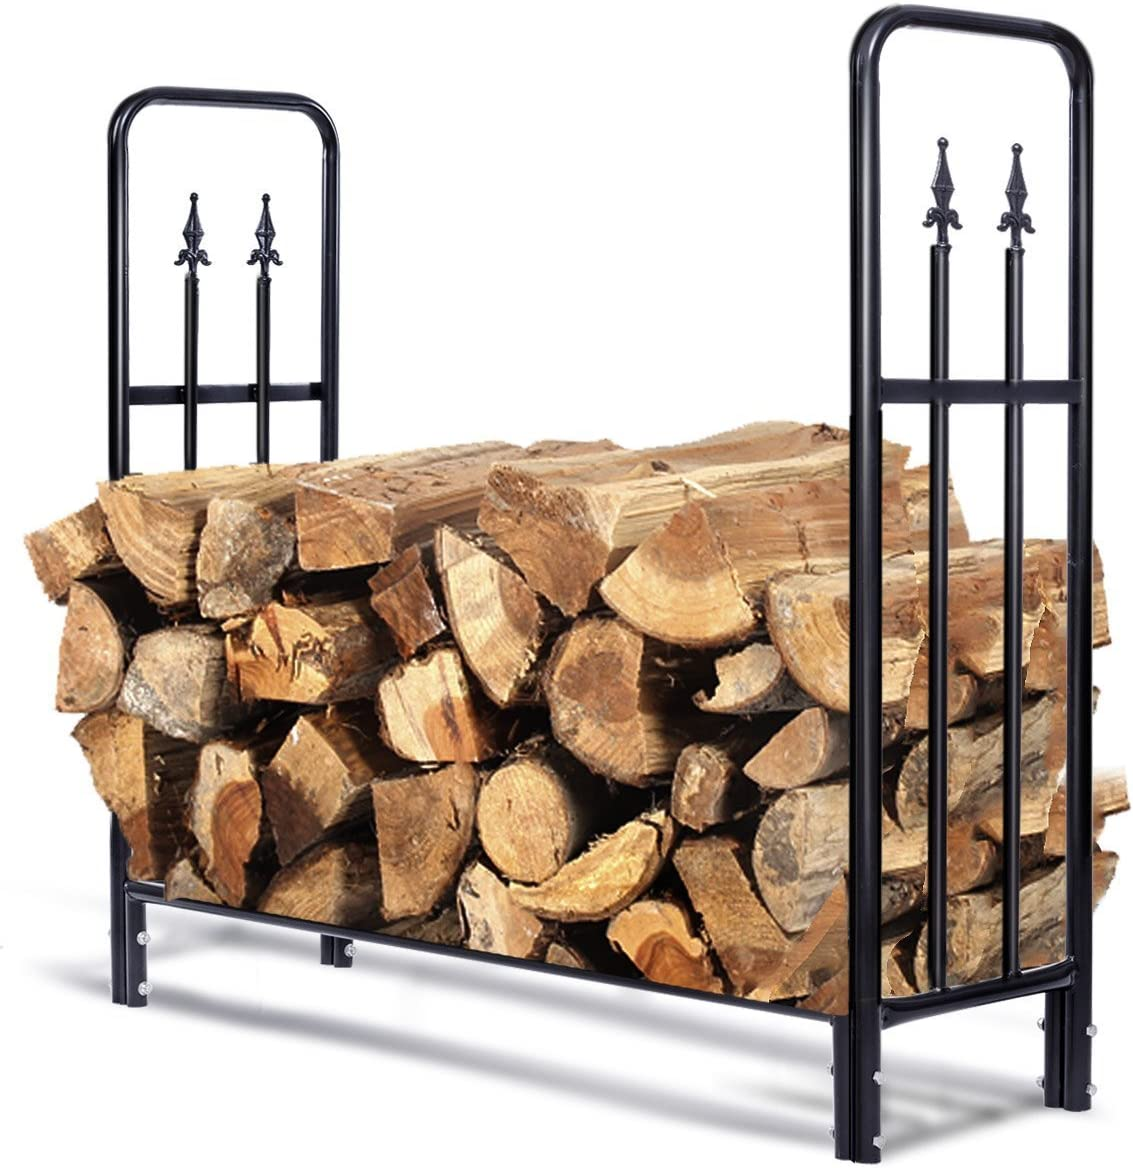 Goplus Firewood Log Rack Indoor Outdoor Fireplace Storage Holder Logs Heavy Duty Steel Wood Stacking Holder Kindling Wood Stove Accessories Tools Accessories 4 Feet